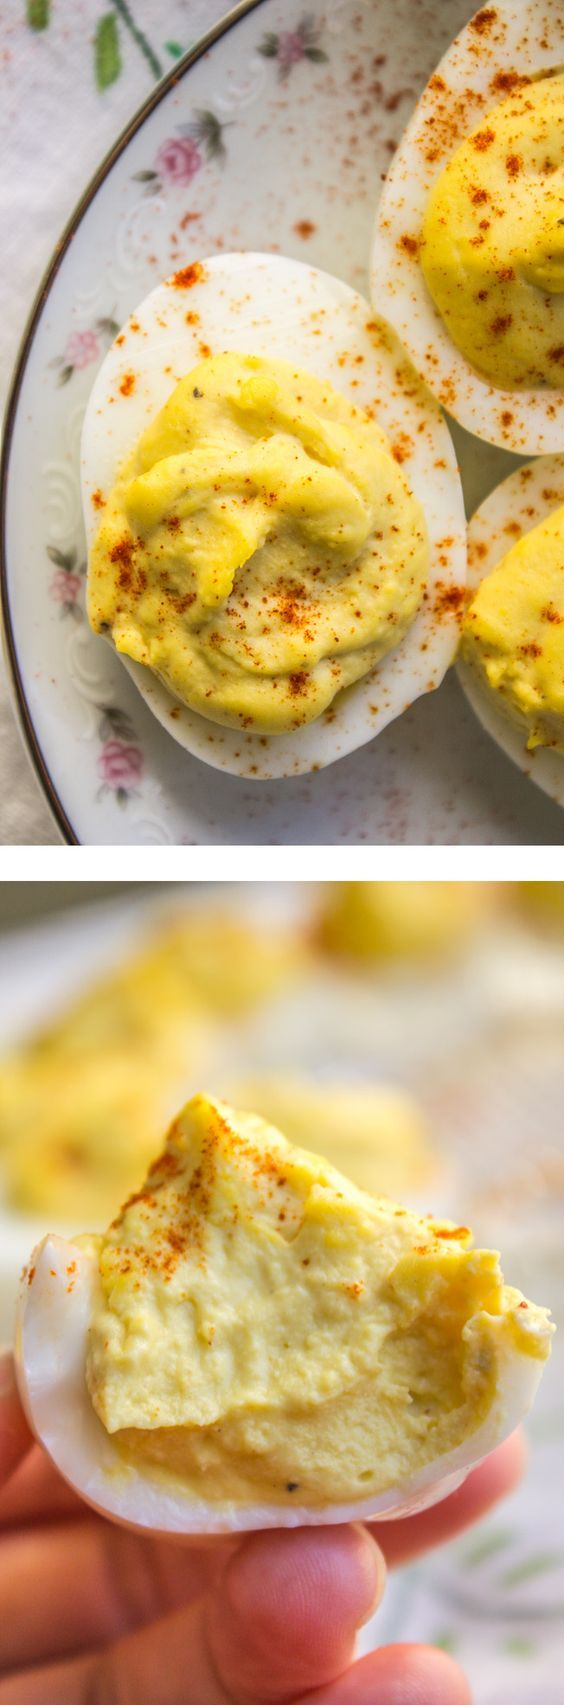 Deviled Eggs are an absolute must for Easter! This recipe is the classic version, nothing but mayonnaise, mustard, spices and perfectly cooked eggs. Okay and maybe a secret ingredient or two. from The Food Charlatan.